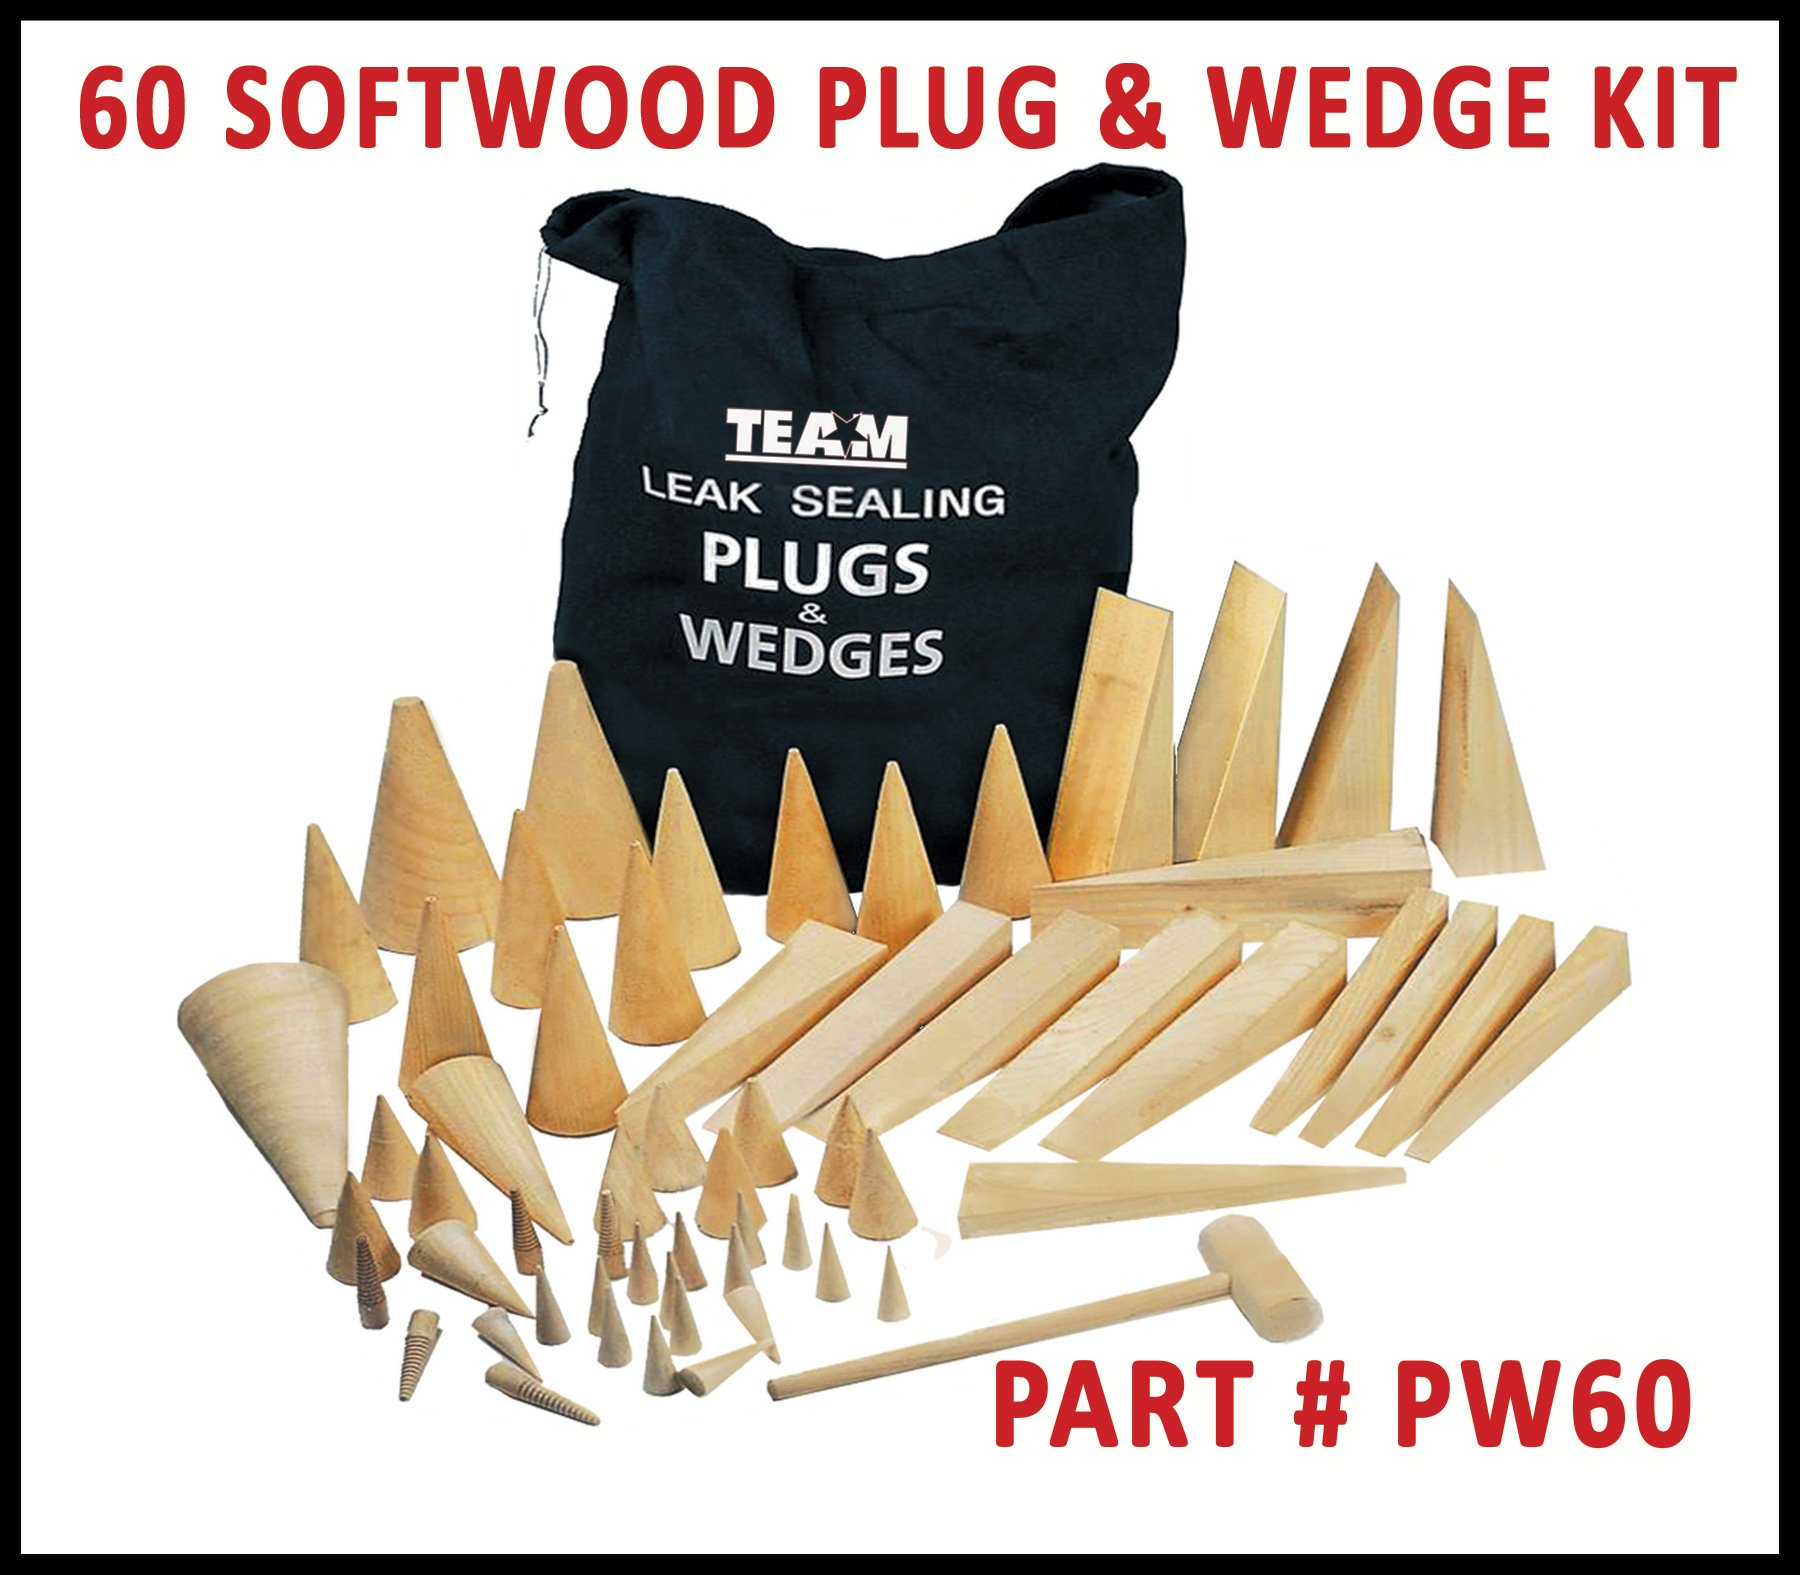 TEAM PW60 Plug and Wedge Kit